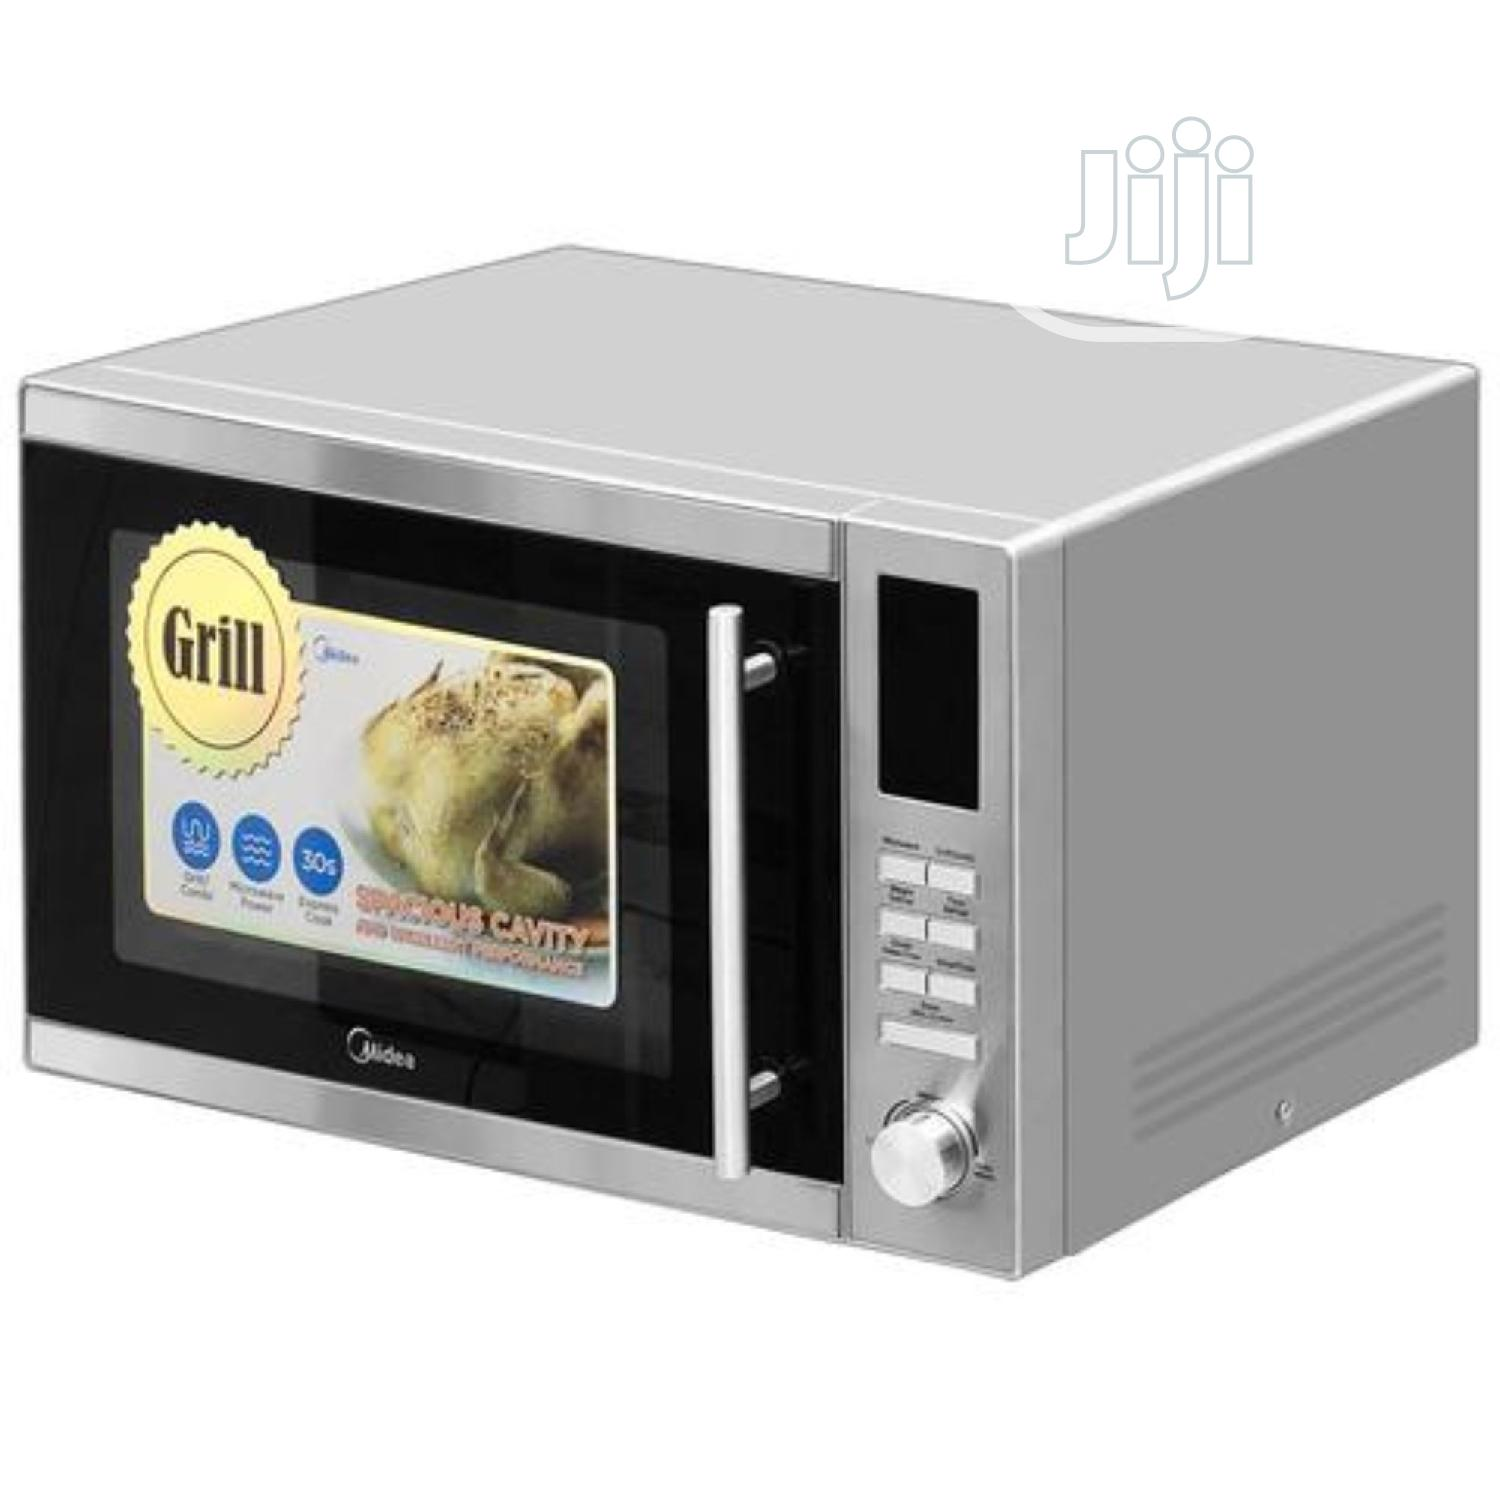 Archive: Midea Microwave Oven -mm720c2by-pm 20l-mr. White